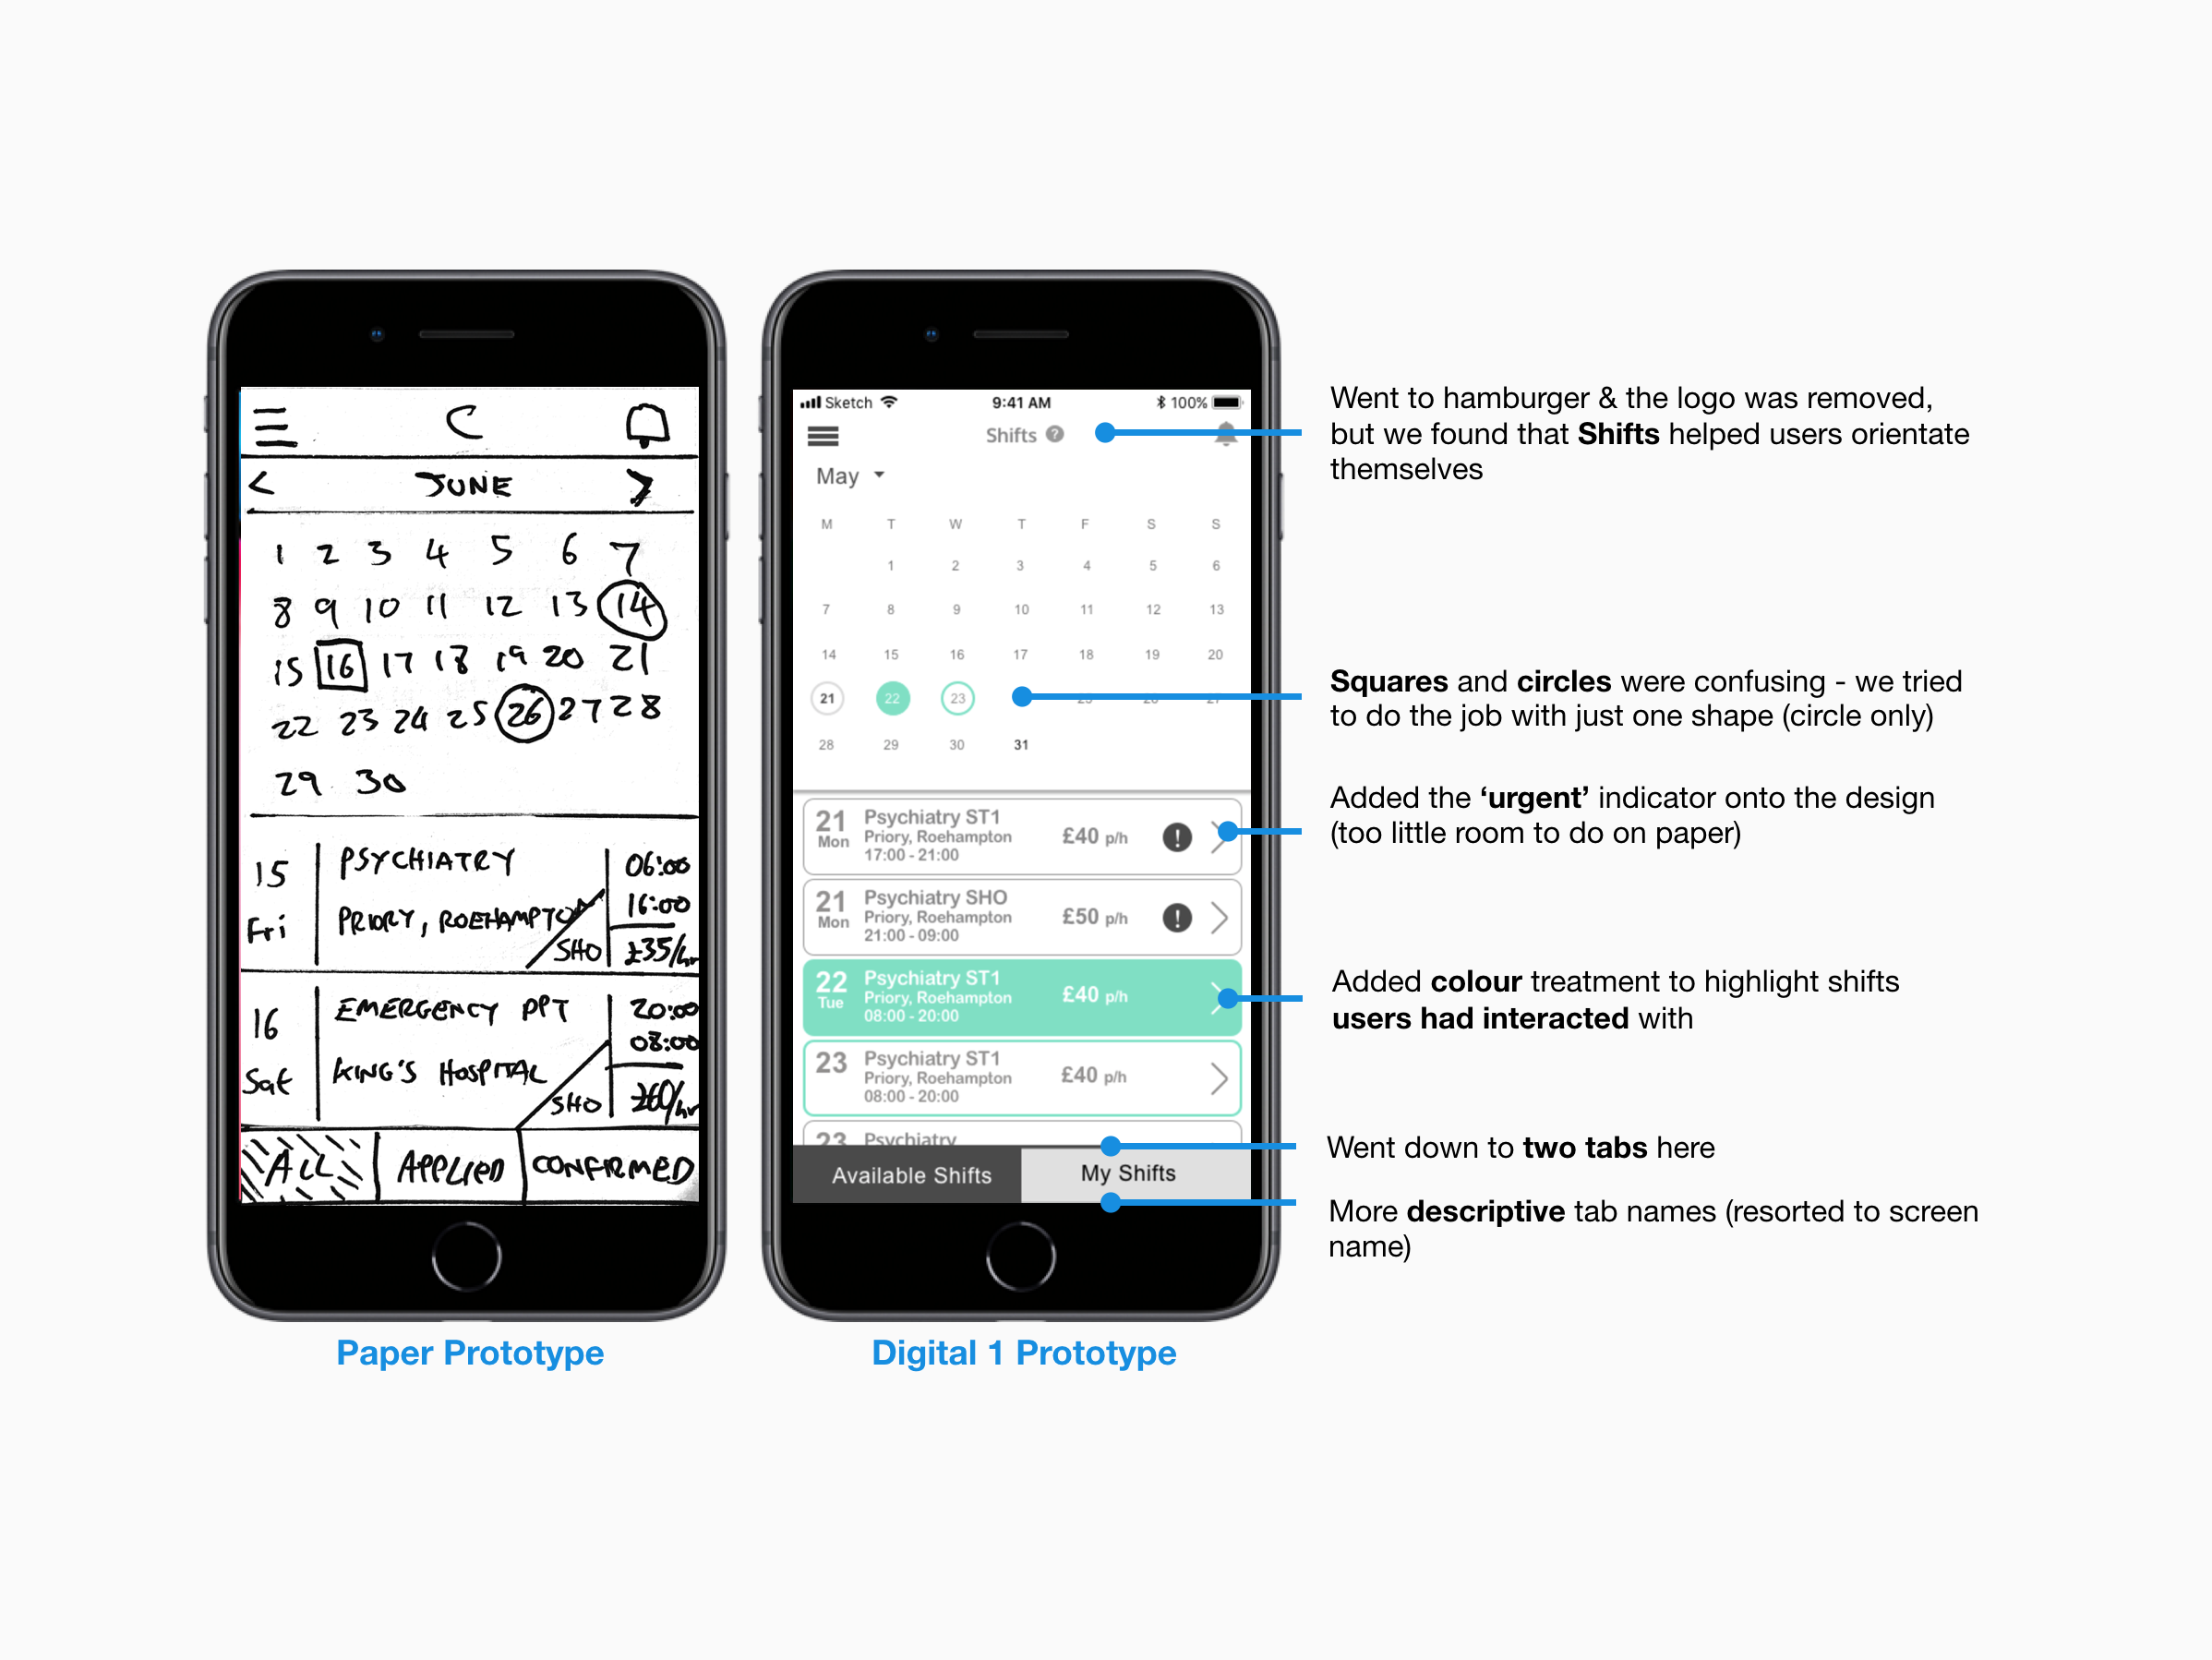 Paper prototype screen next to the digital prototype highlighting iterations based on usability testing